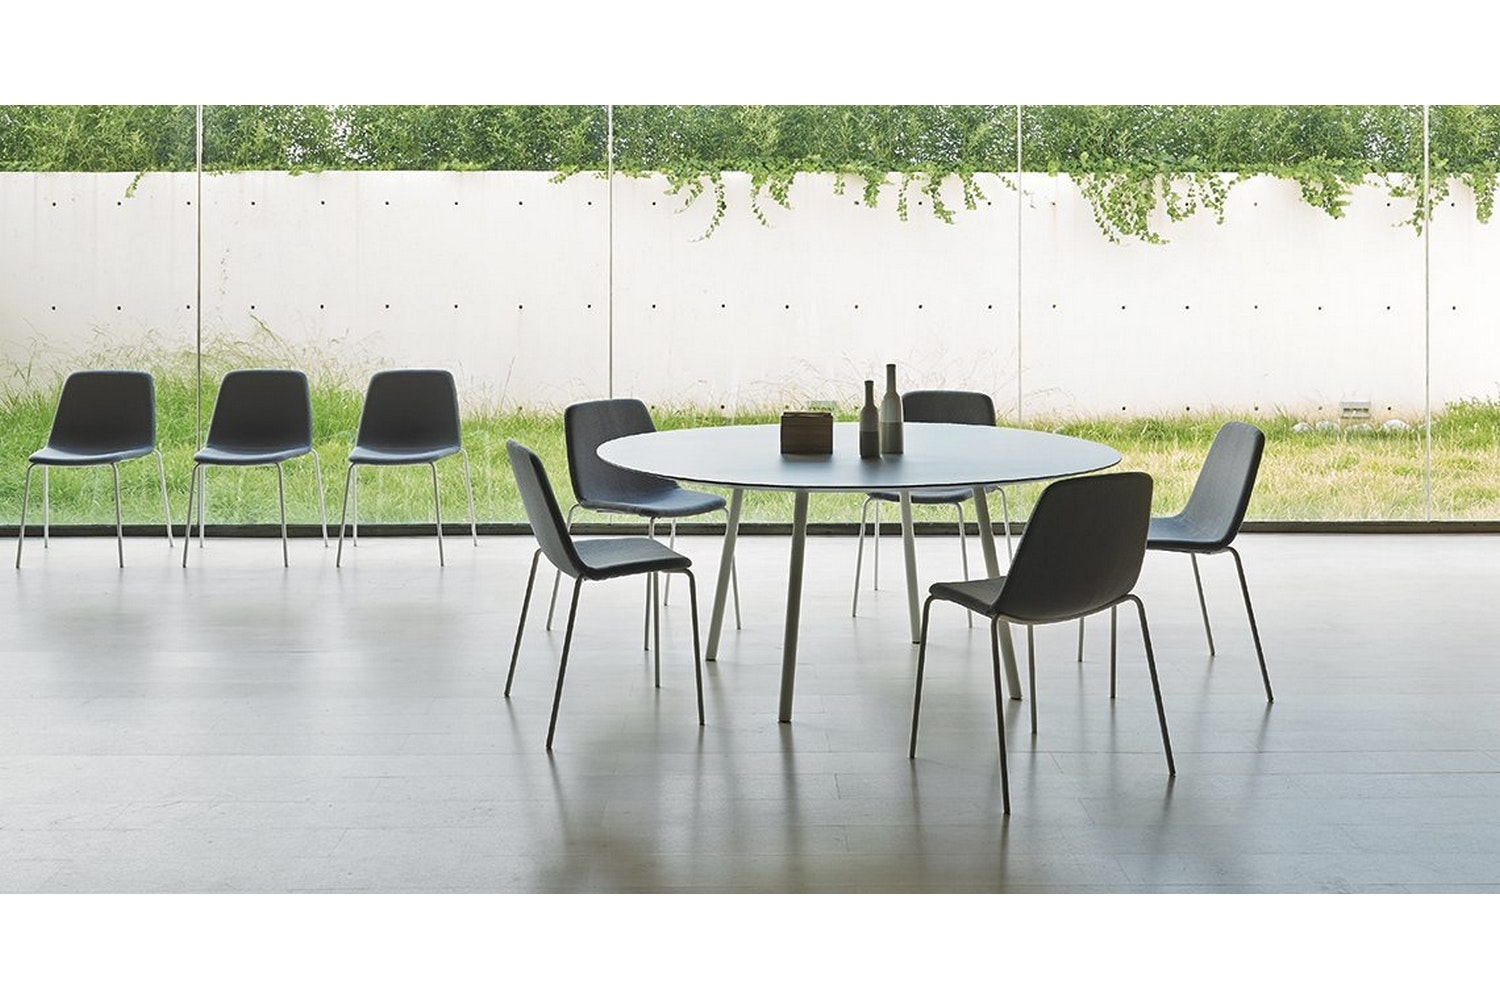 Maarten Table by Victor Carrasco for Viccarbe